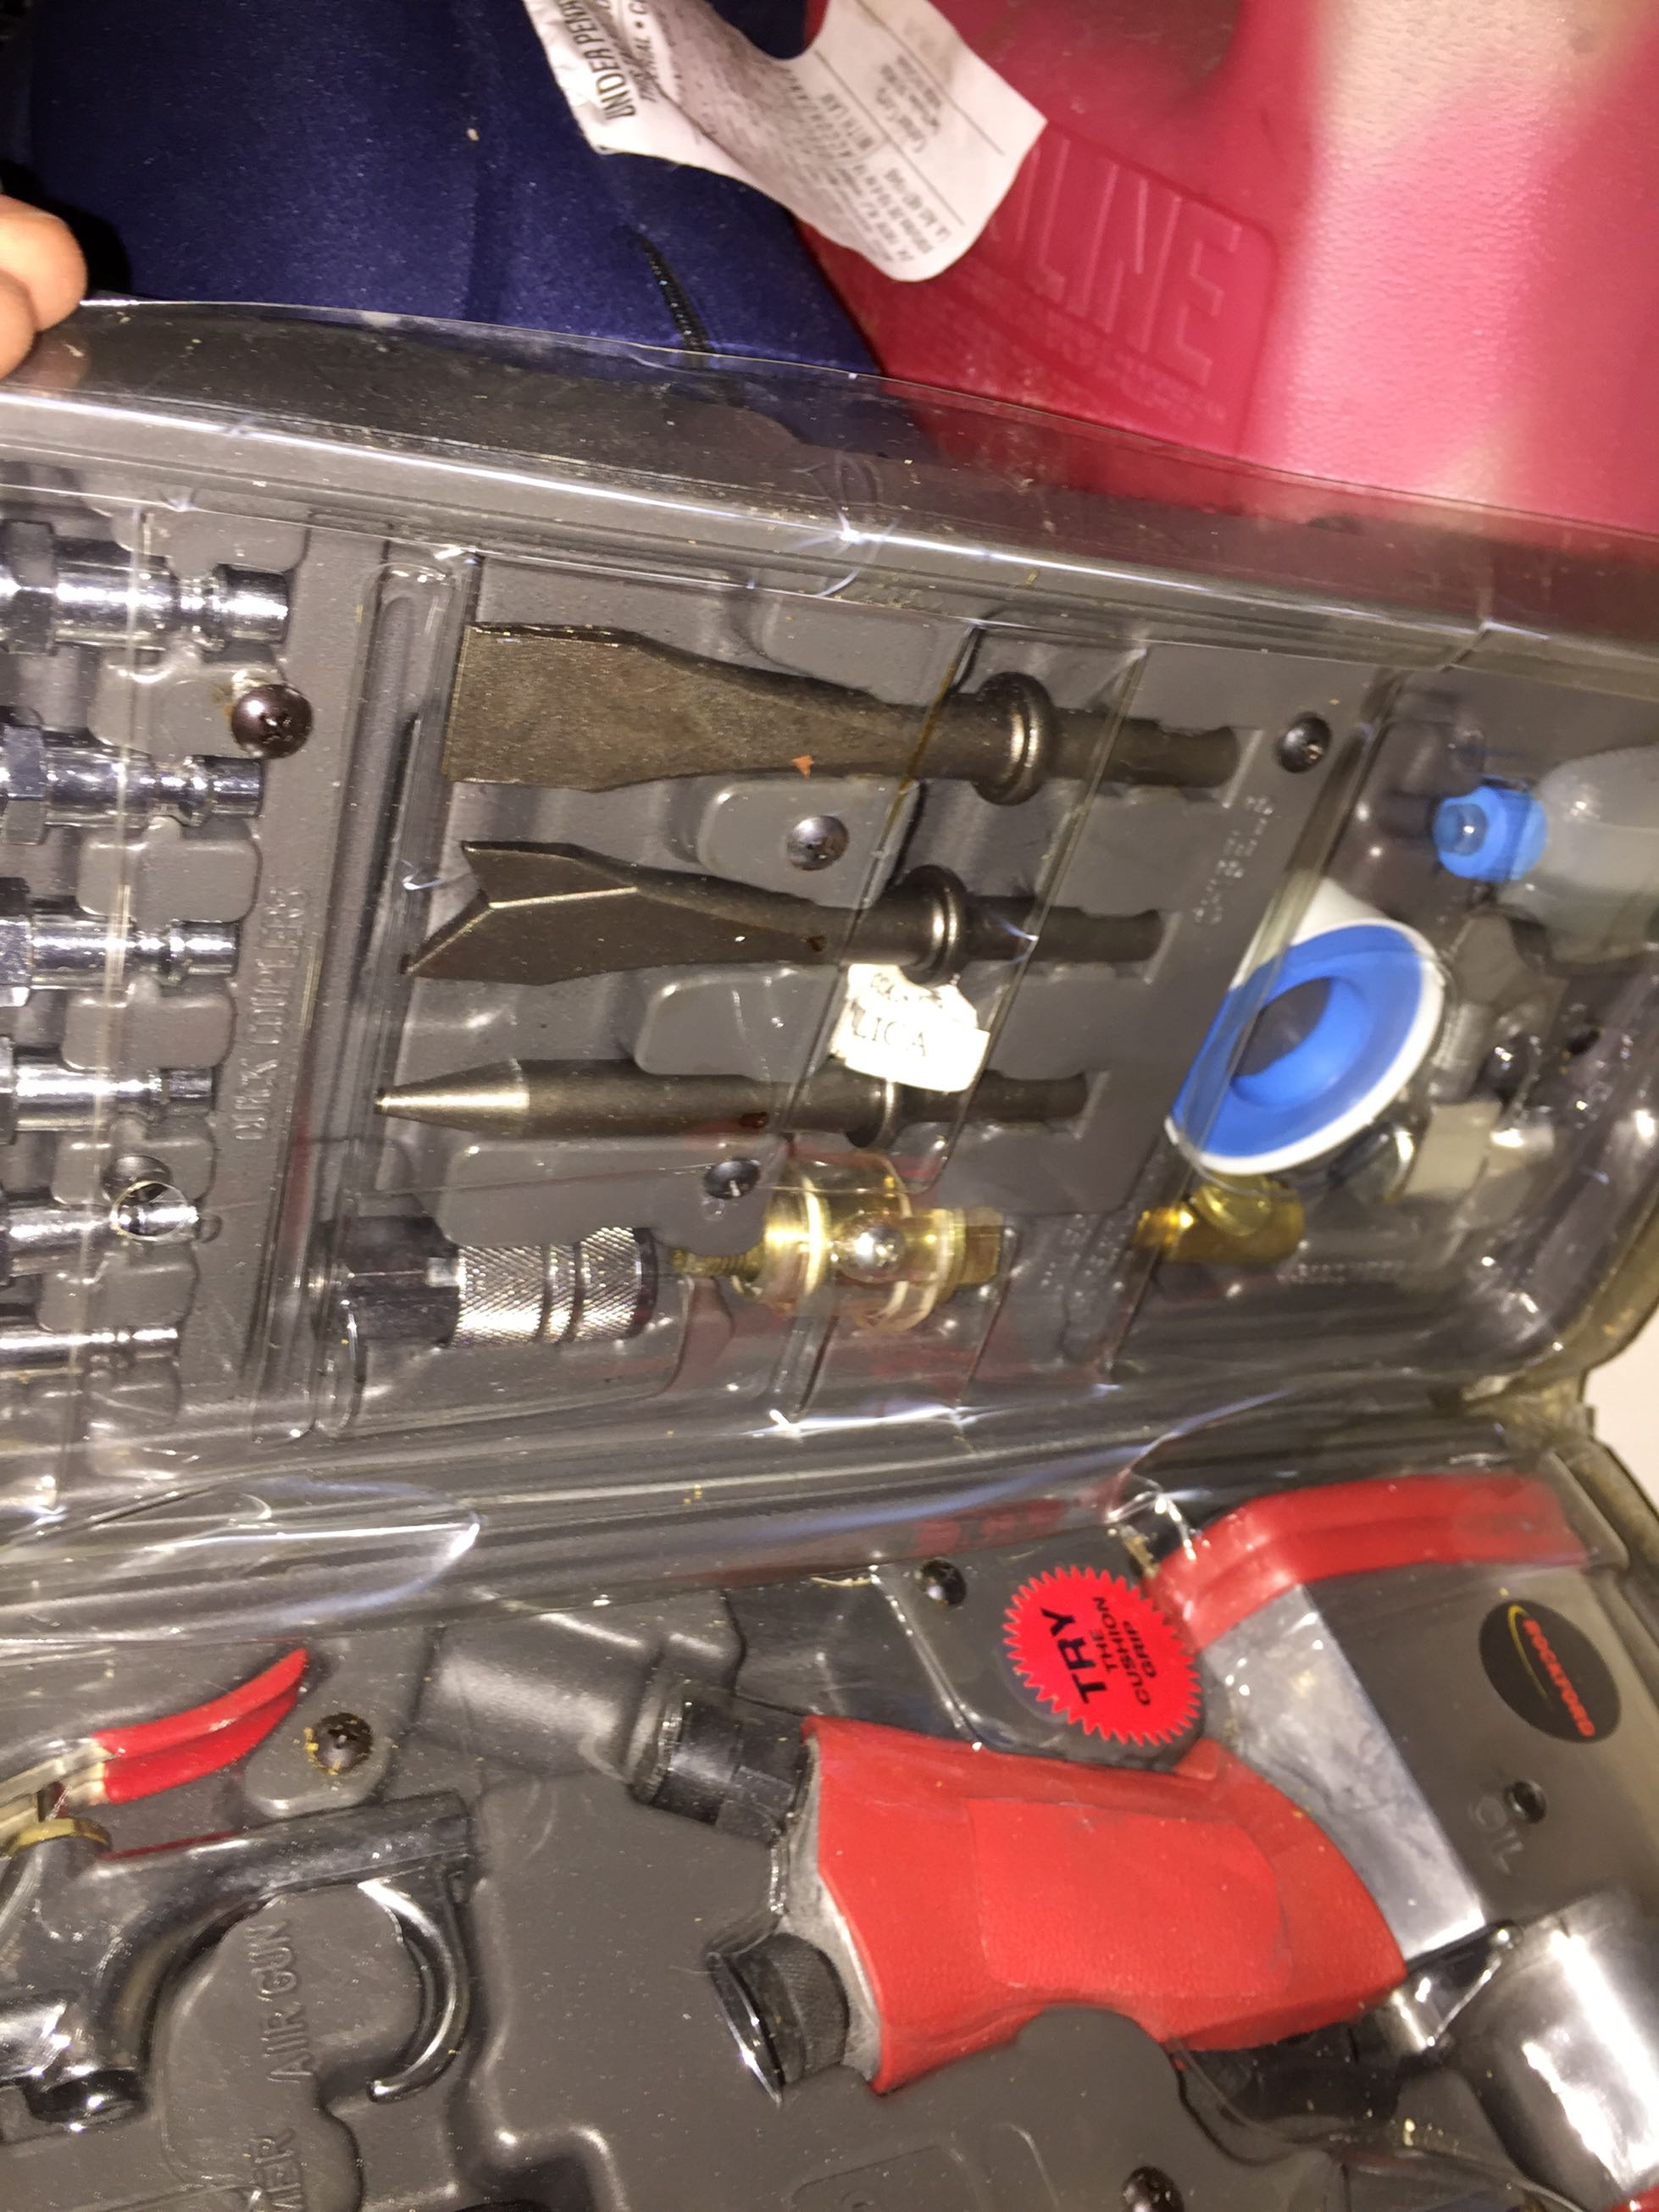 Air Impact Wrench - Air Tools - Rockford in DeSoto |$199